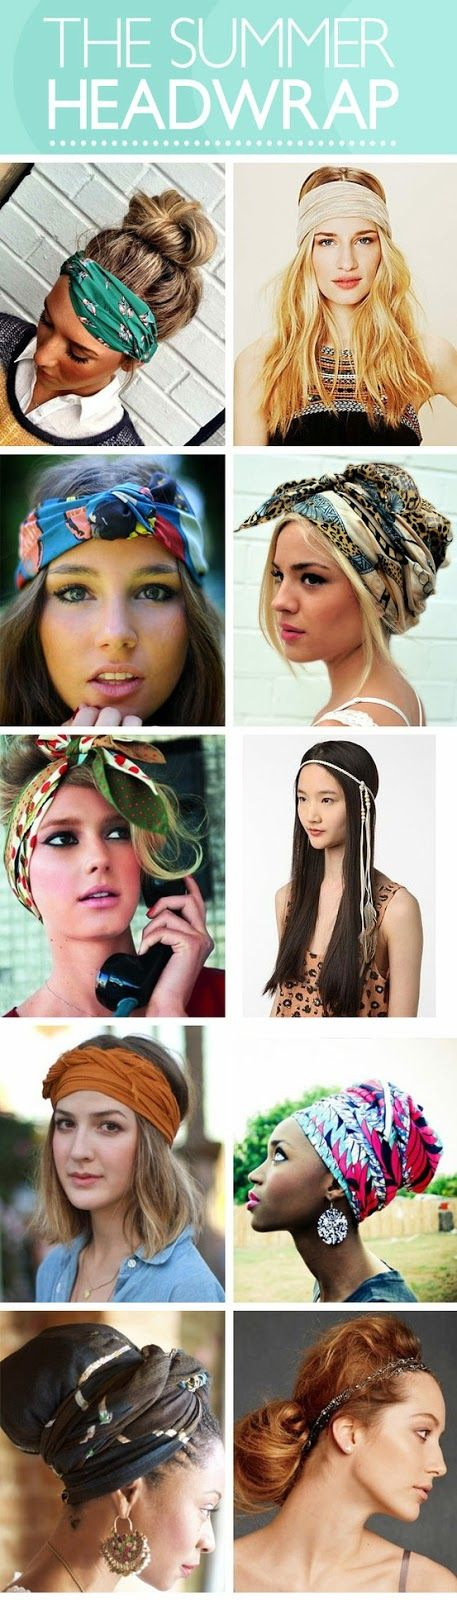 fashion style hair 174 best wraps bands scarves turbans images on 5709 | 509040b15c56b5ab63e74c839f5709c1 hippie headband hairstyles scarf hairstyles